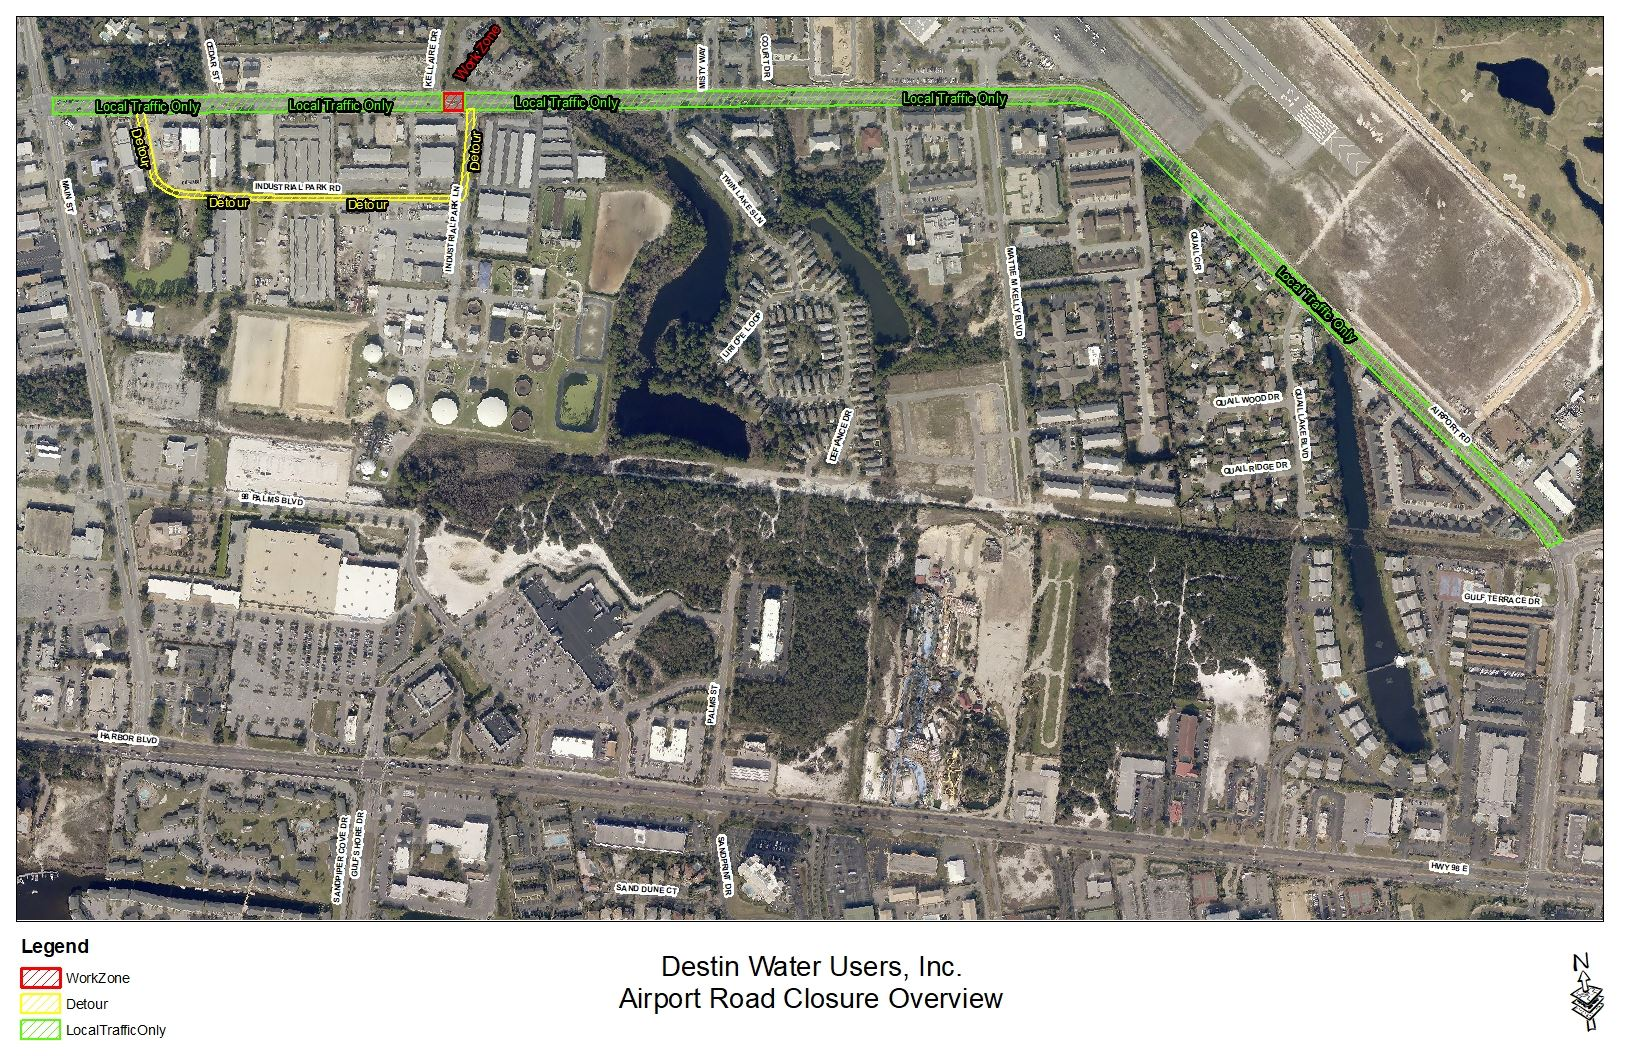 Destin Water Users, Inc. Airport Road Closure Overview